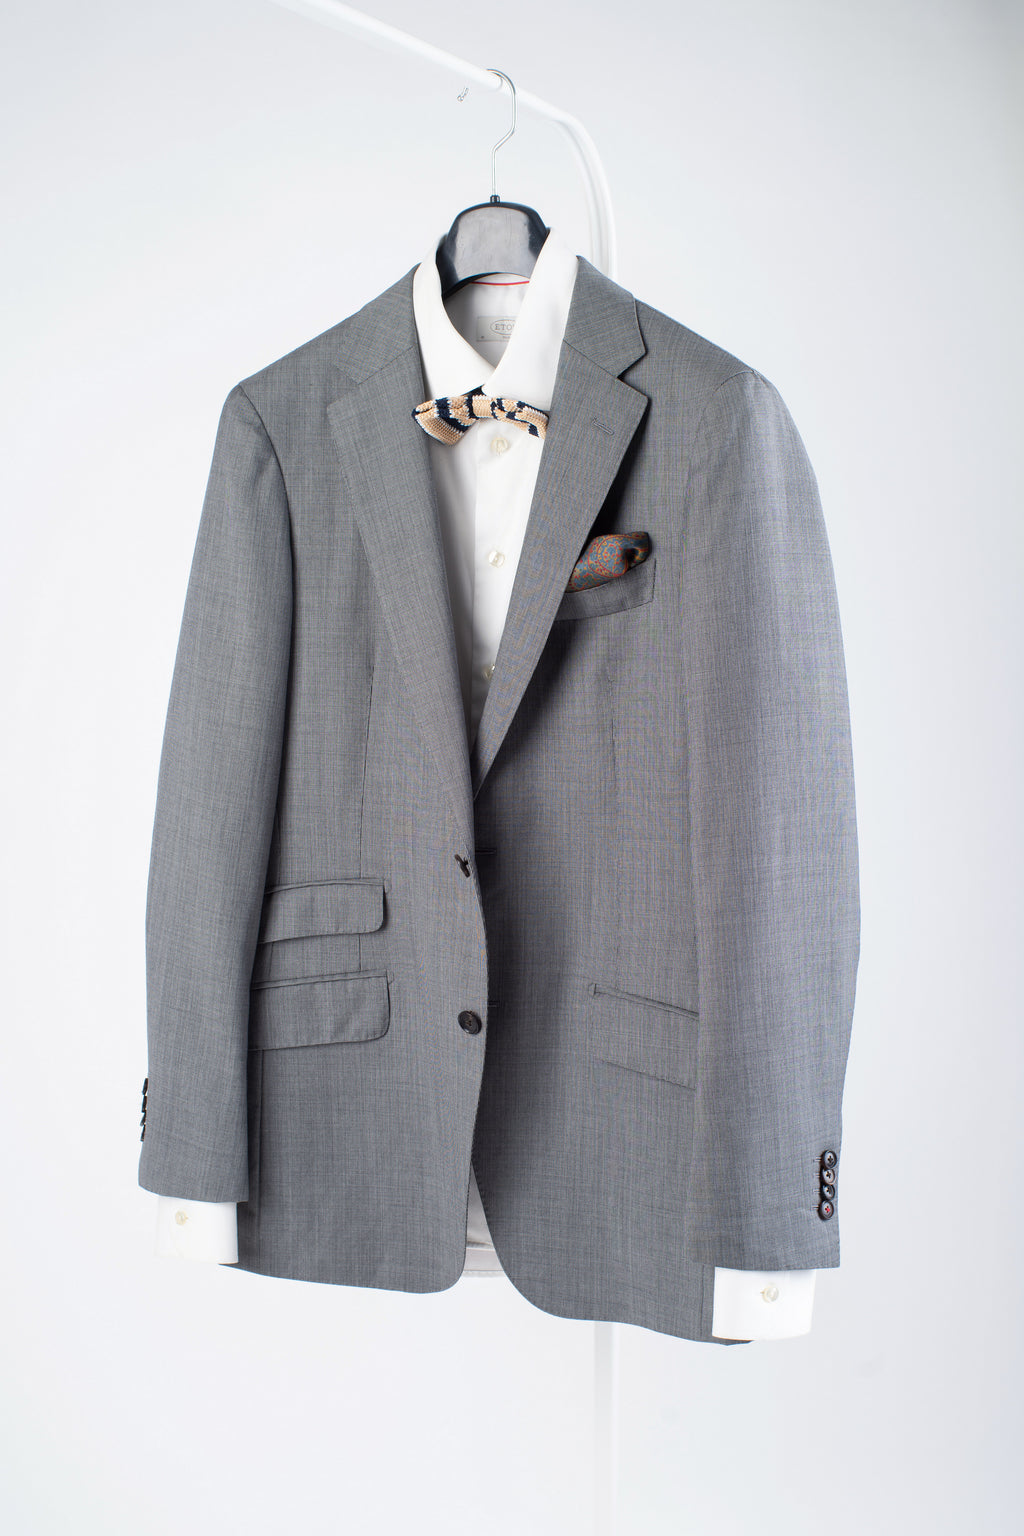 Suitsupply Sienna 2 Button Super 130's Wool Gray Blazer US 38L, EU 94